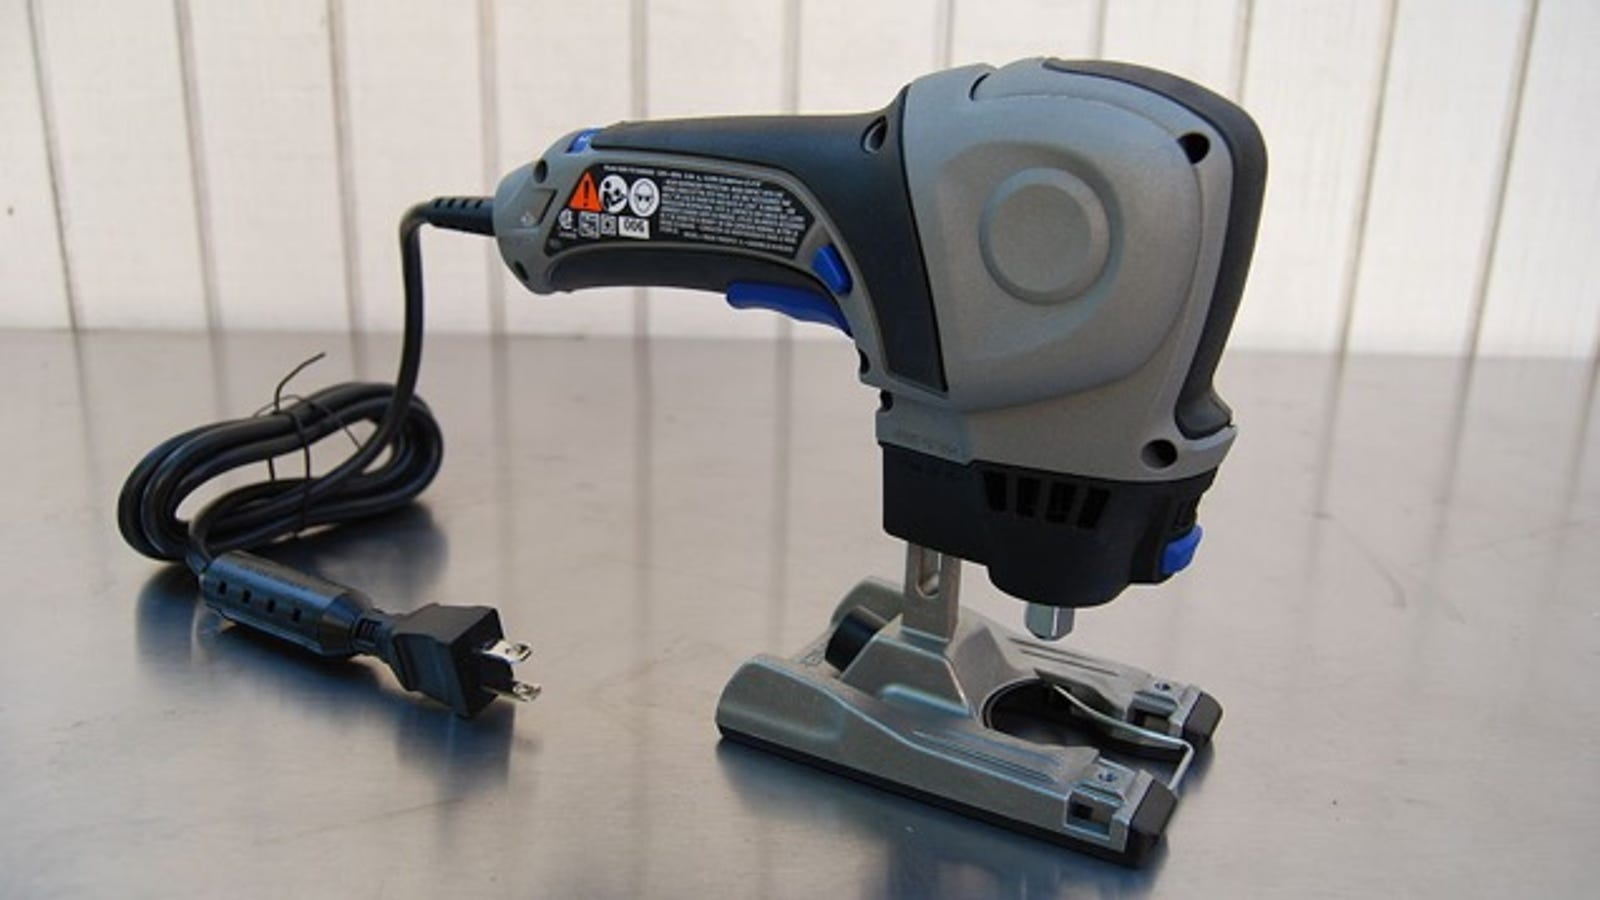 How to Buy Quality Tools for Cheap on Craigslist